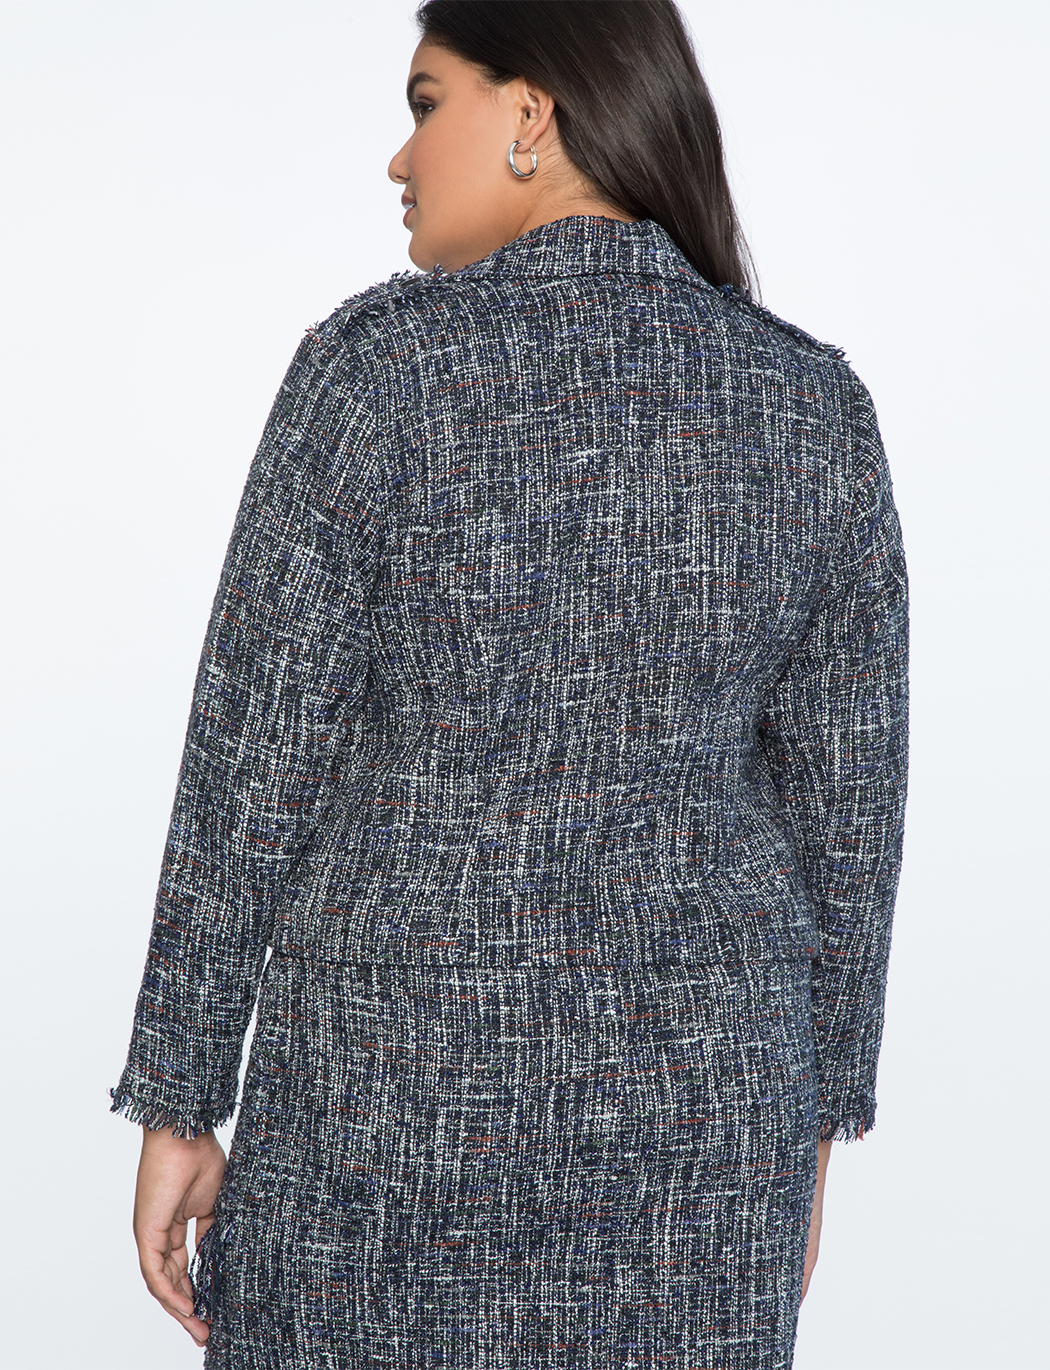 Fringed Tweed Moto Jacket